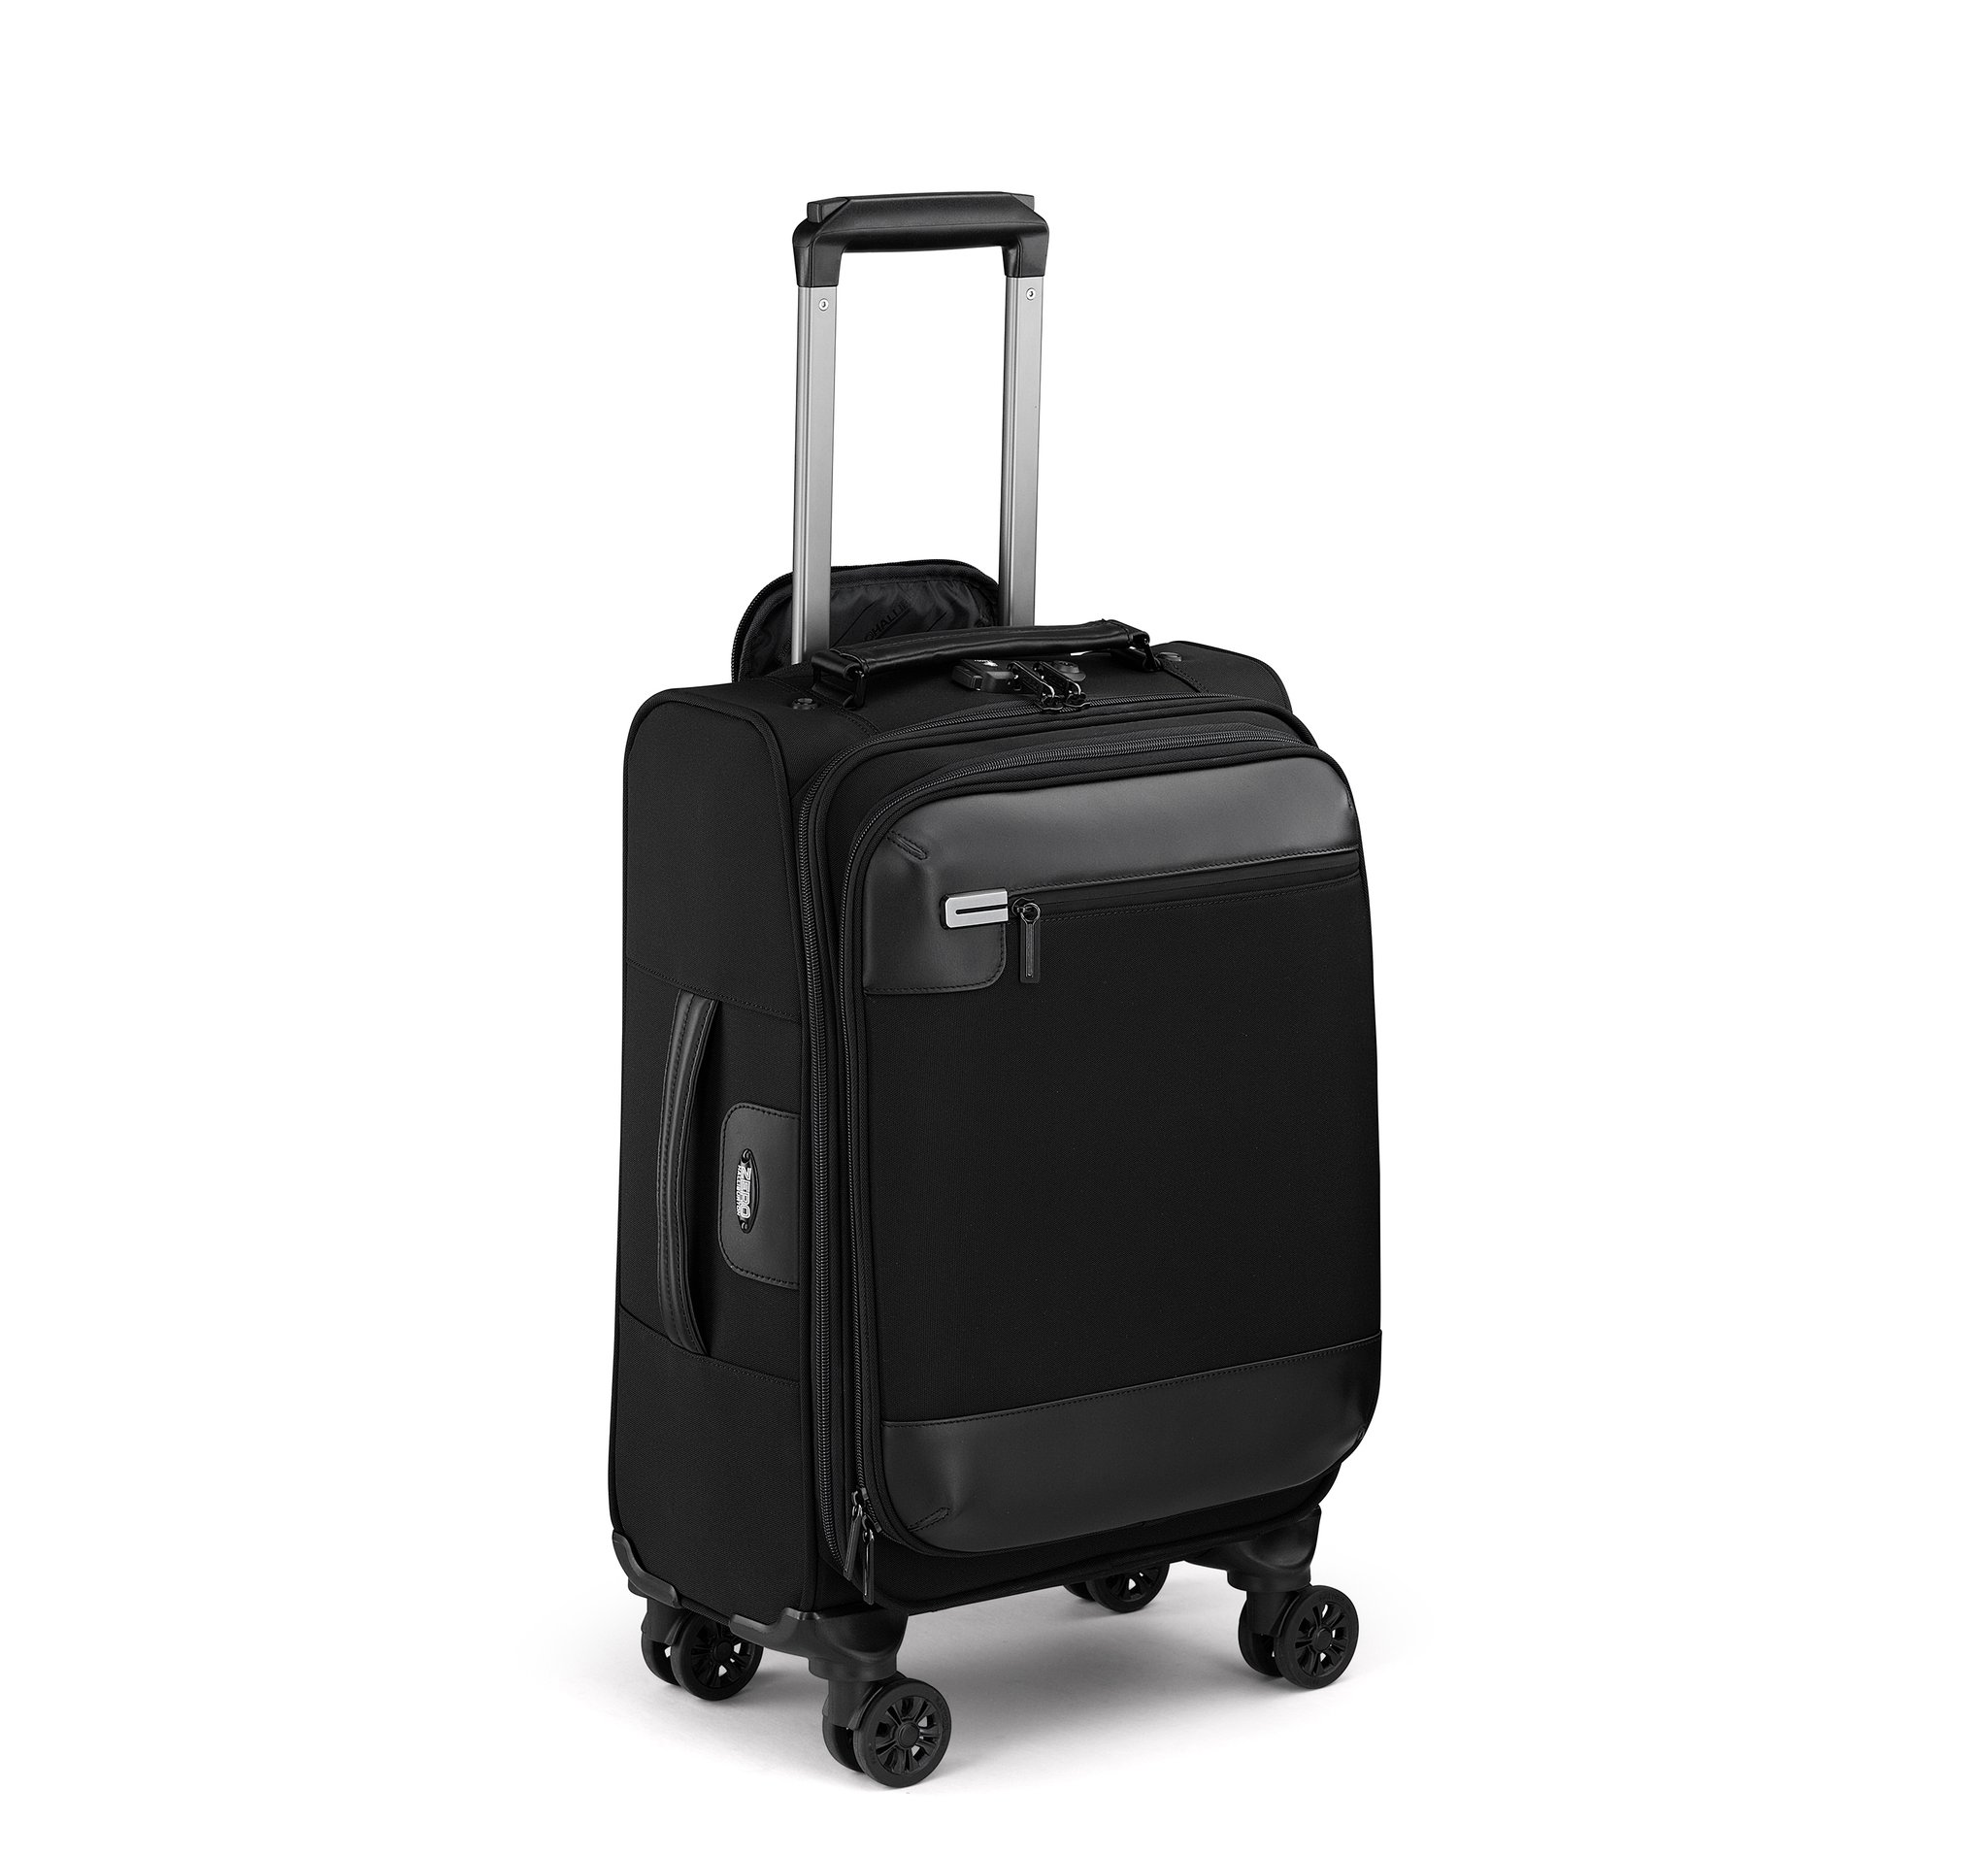 PRF 3.0 - Small Upright Suitcase by Zero Halliburton (Color: Black)